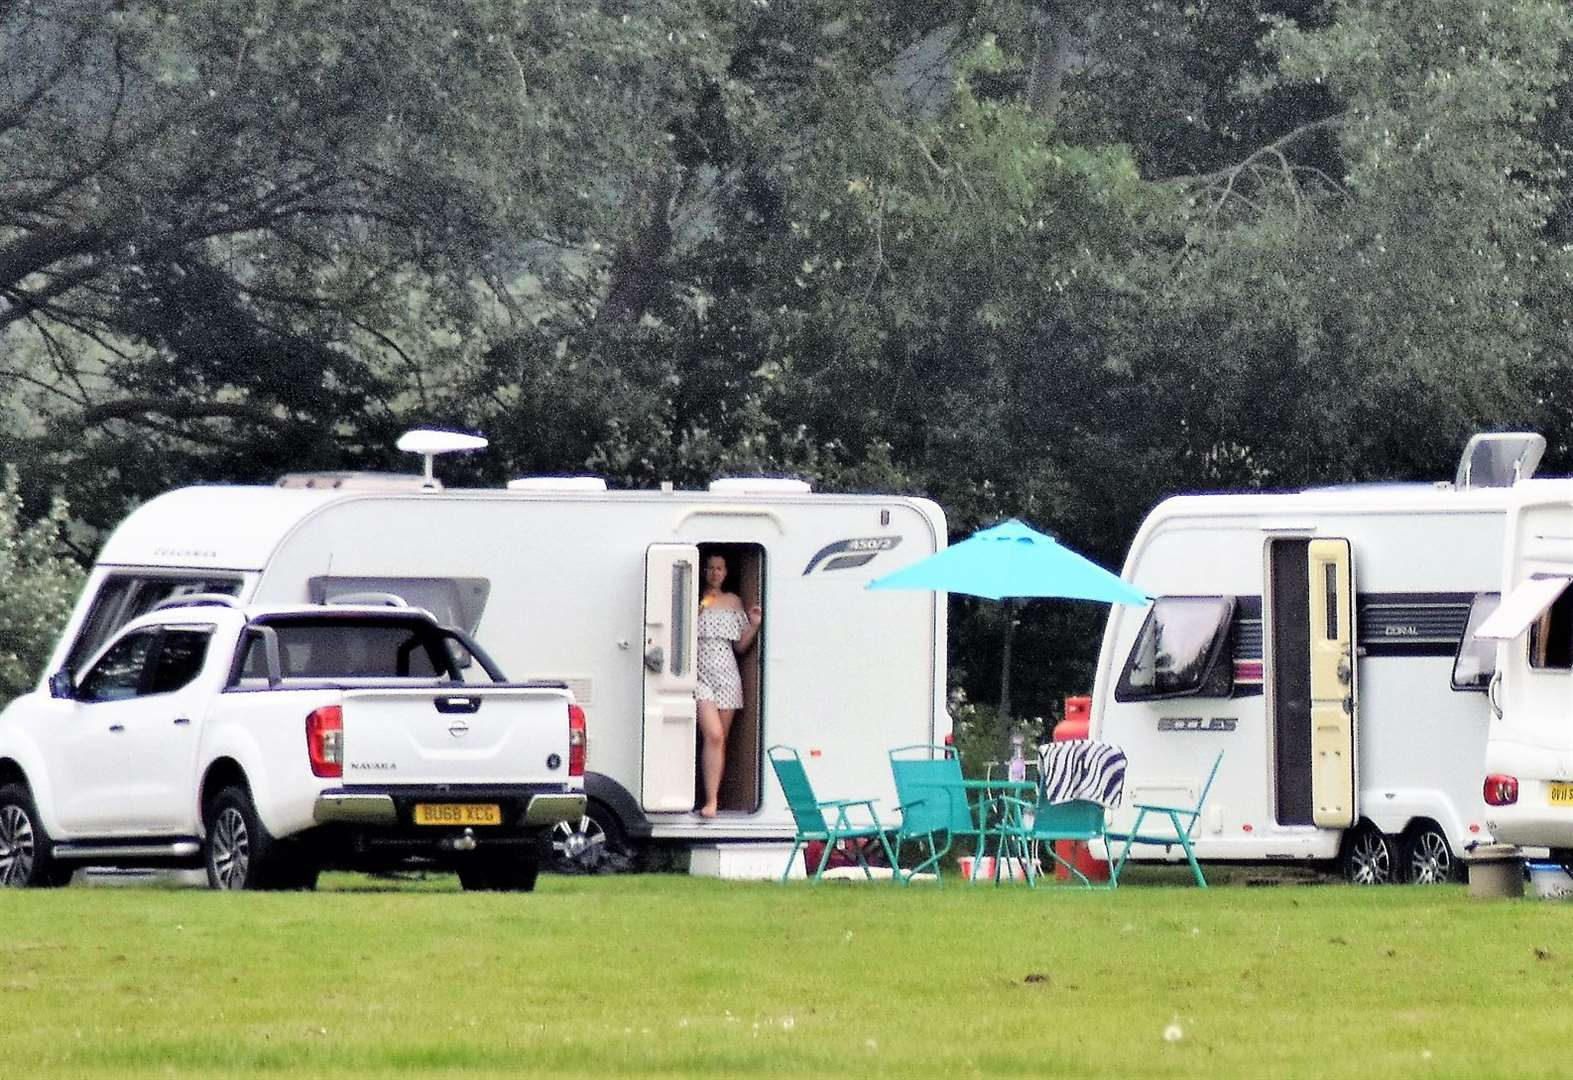 Travellers expected to leave playing fields today after council serves eviction notice